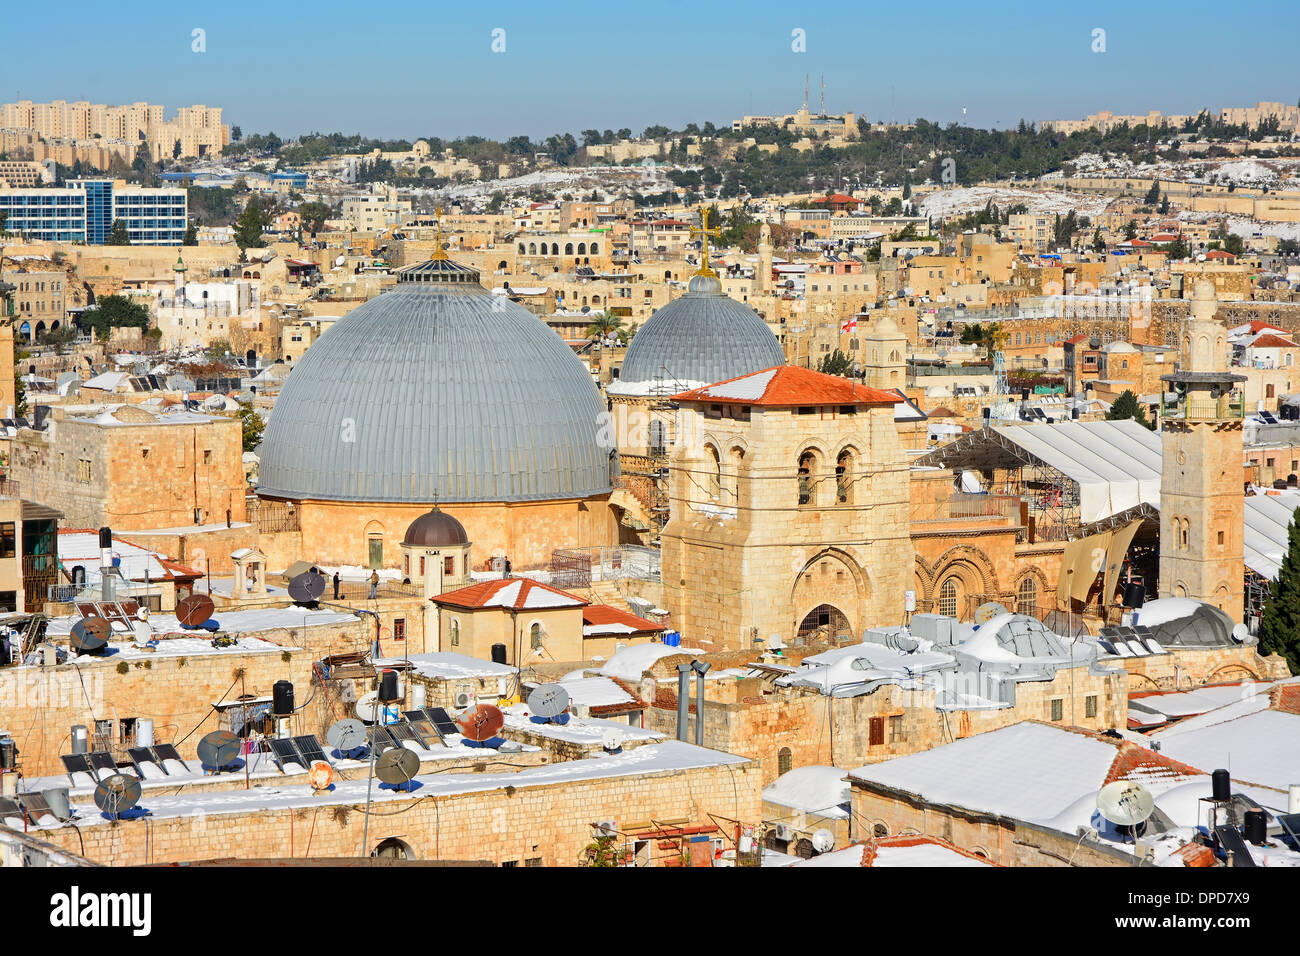 Church of the holy sepulchre Roof, Jerusalem, Israel - Stock Image